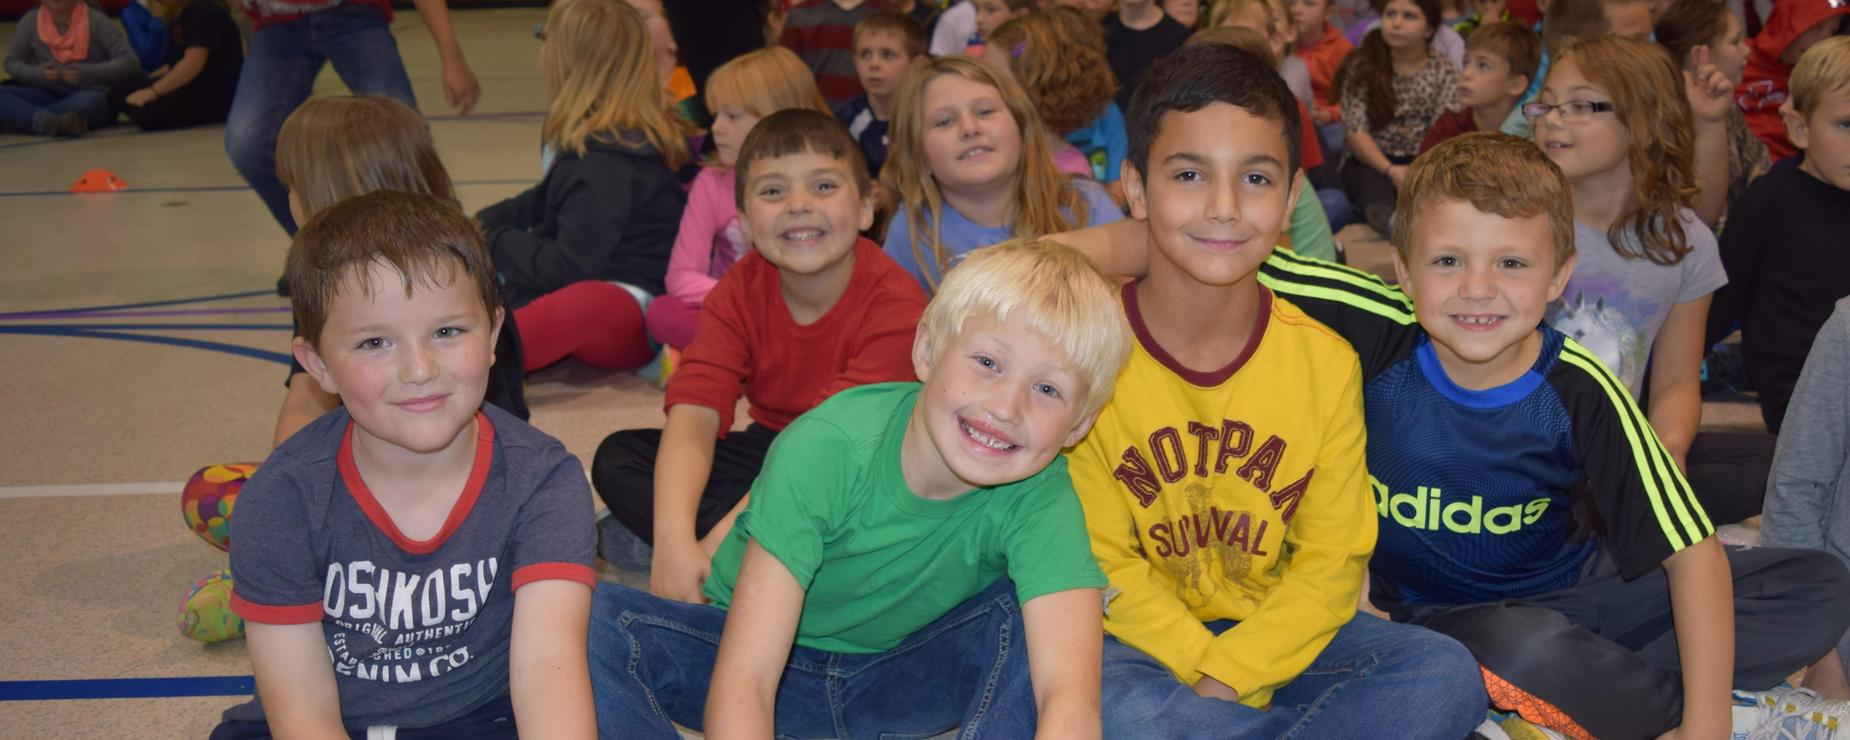 Elementary students smiling together with arms around each other